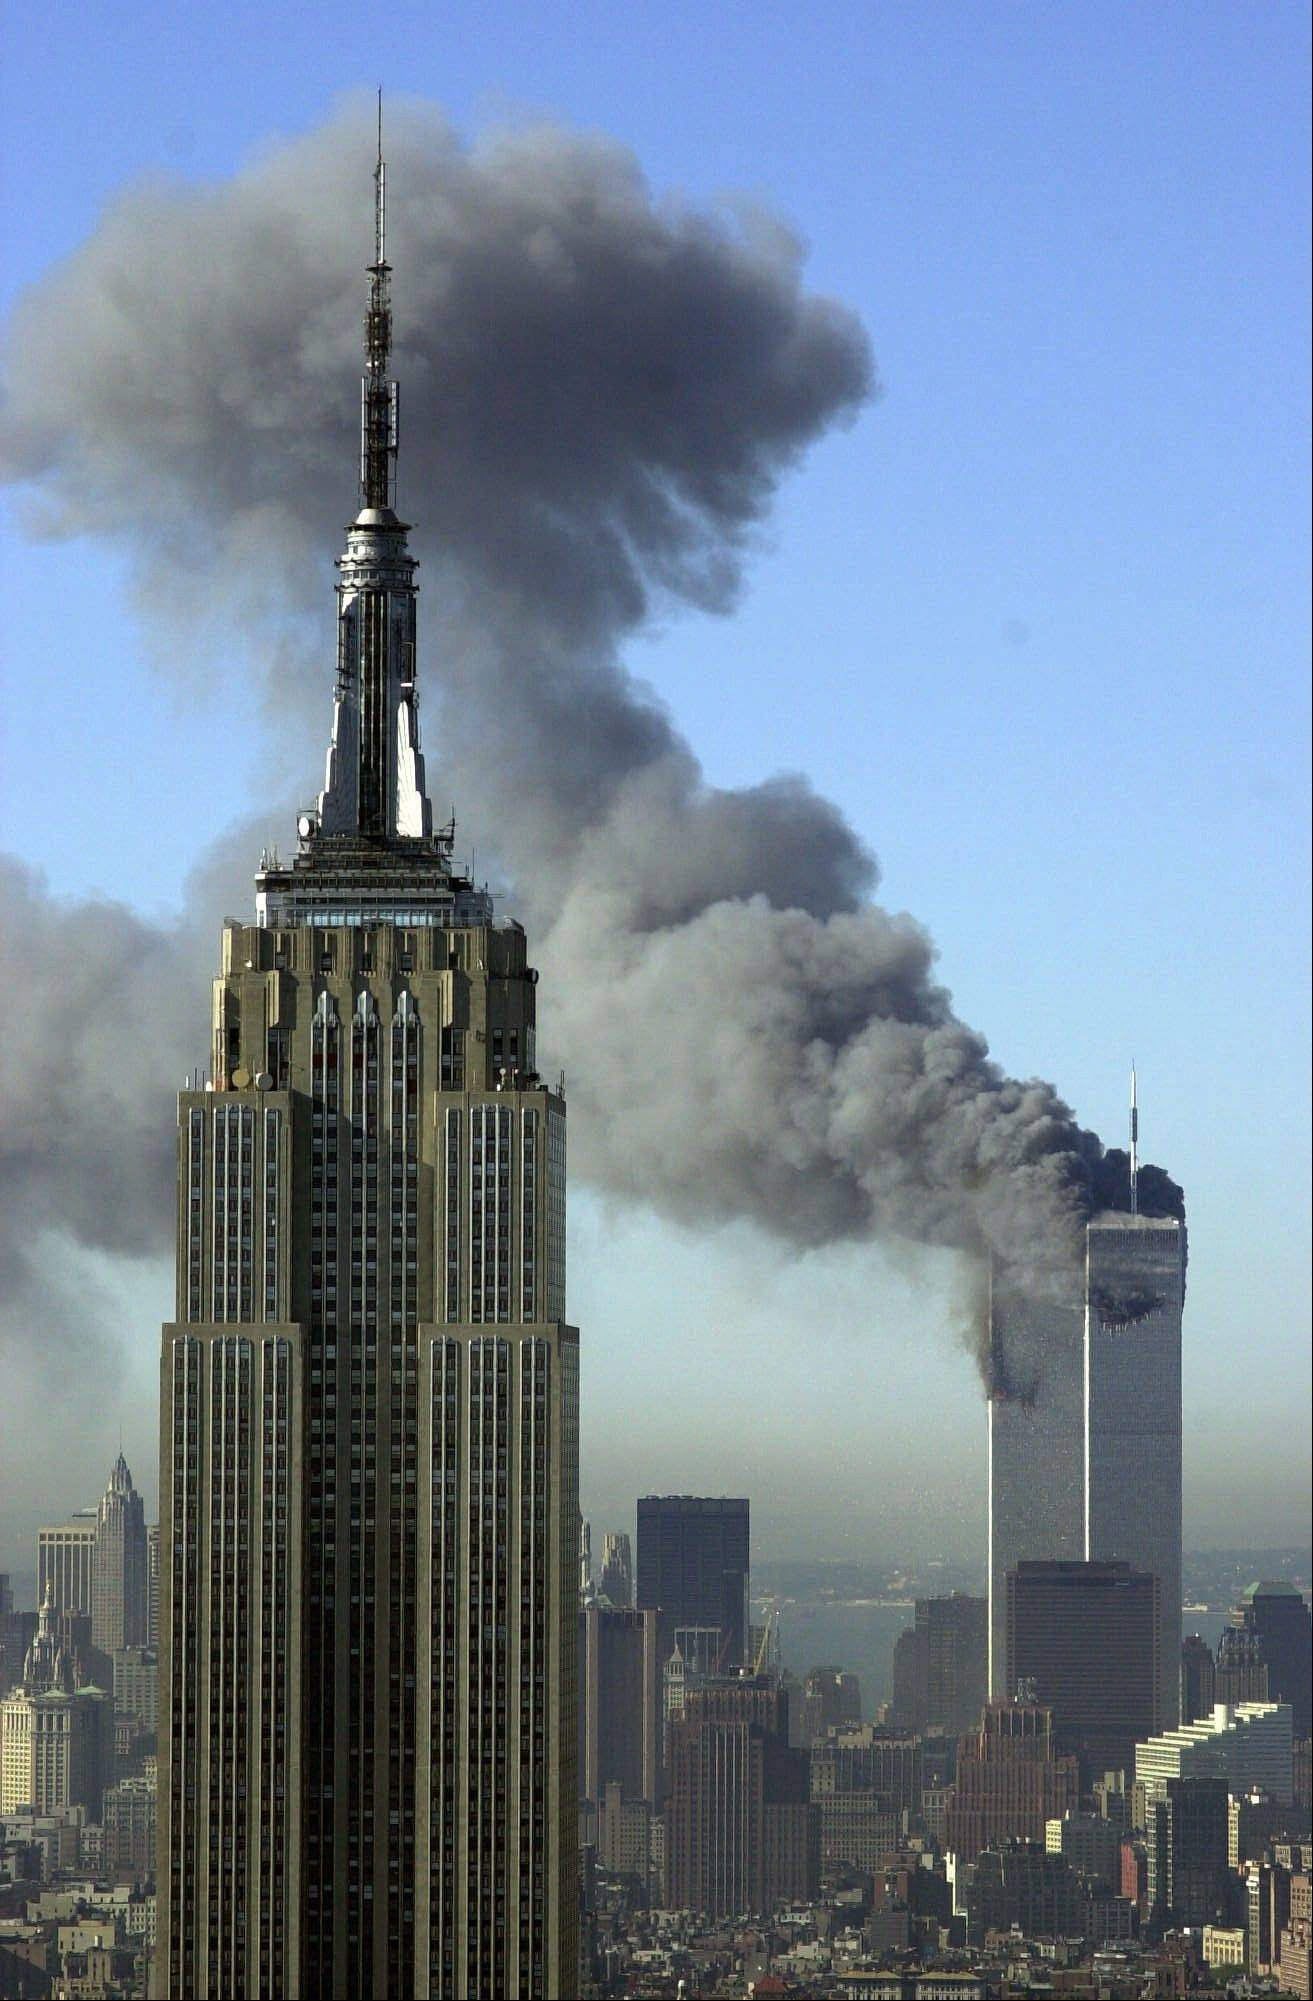 Plumes of smoke rise from the World Trade Center buildings in New York on Sept. 11, 2001. The Empire State Building is seen in the foreground. Television viewers who want to immerse themselves in memories of the terrorist attacks as the 10th anniversary approaches will have a staggering number of choices.